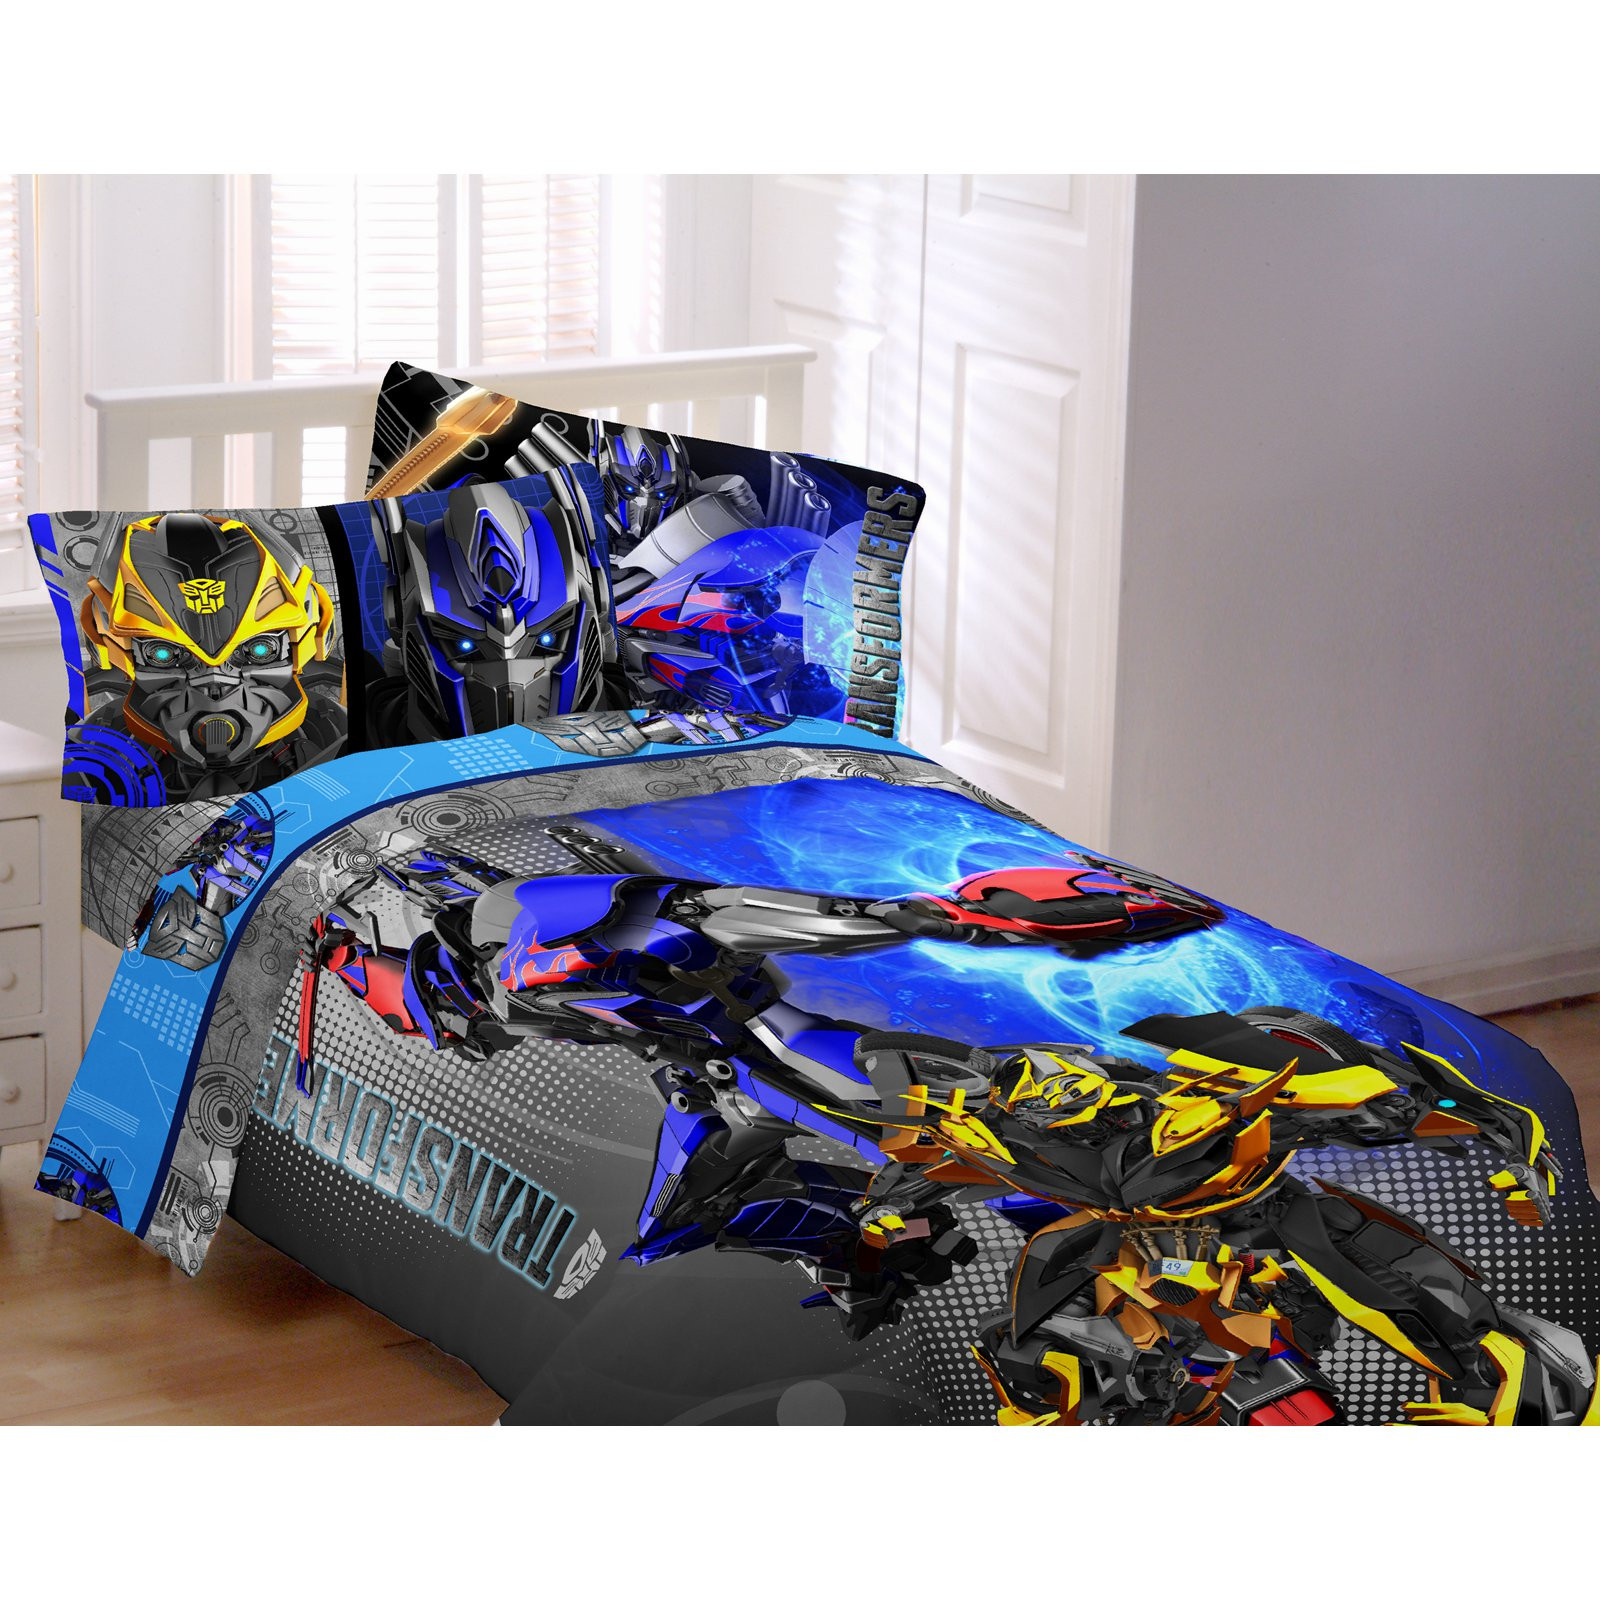 Best ideas about Transformers Bedroom Sets . Save or Pin Transformers 4 Alien Machine Twin Full forter Bedding Now.